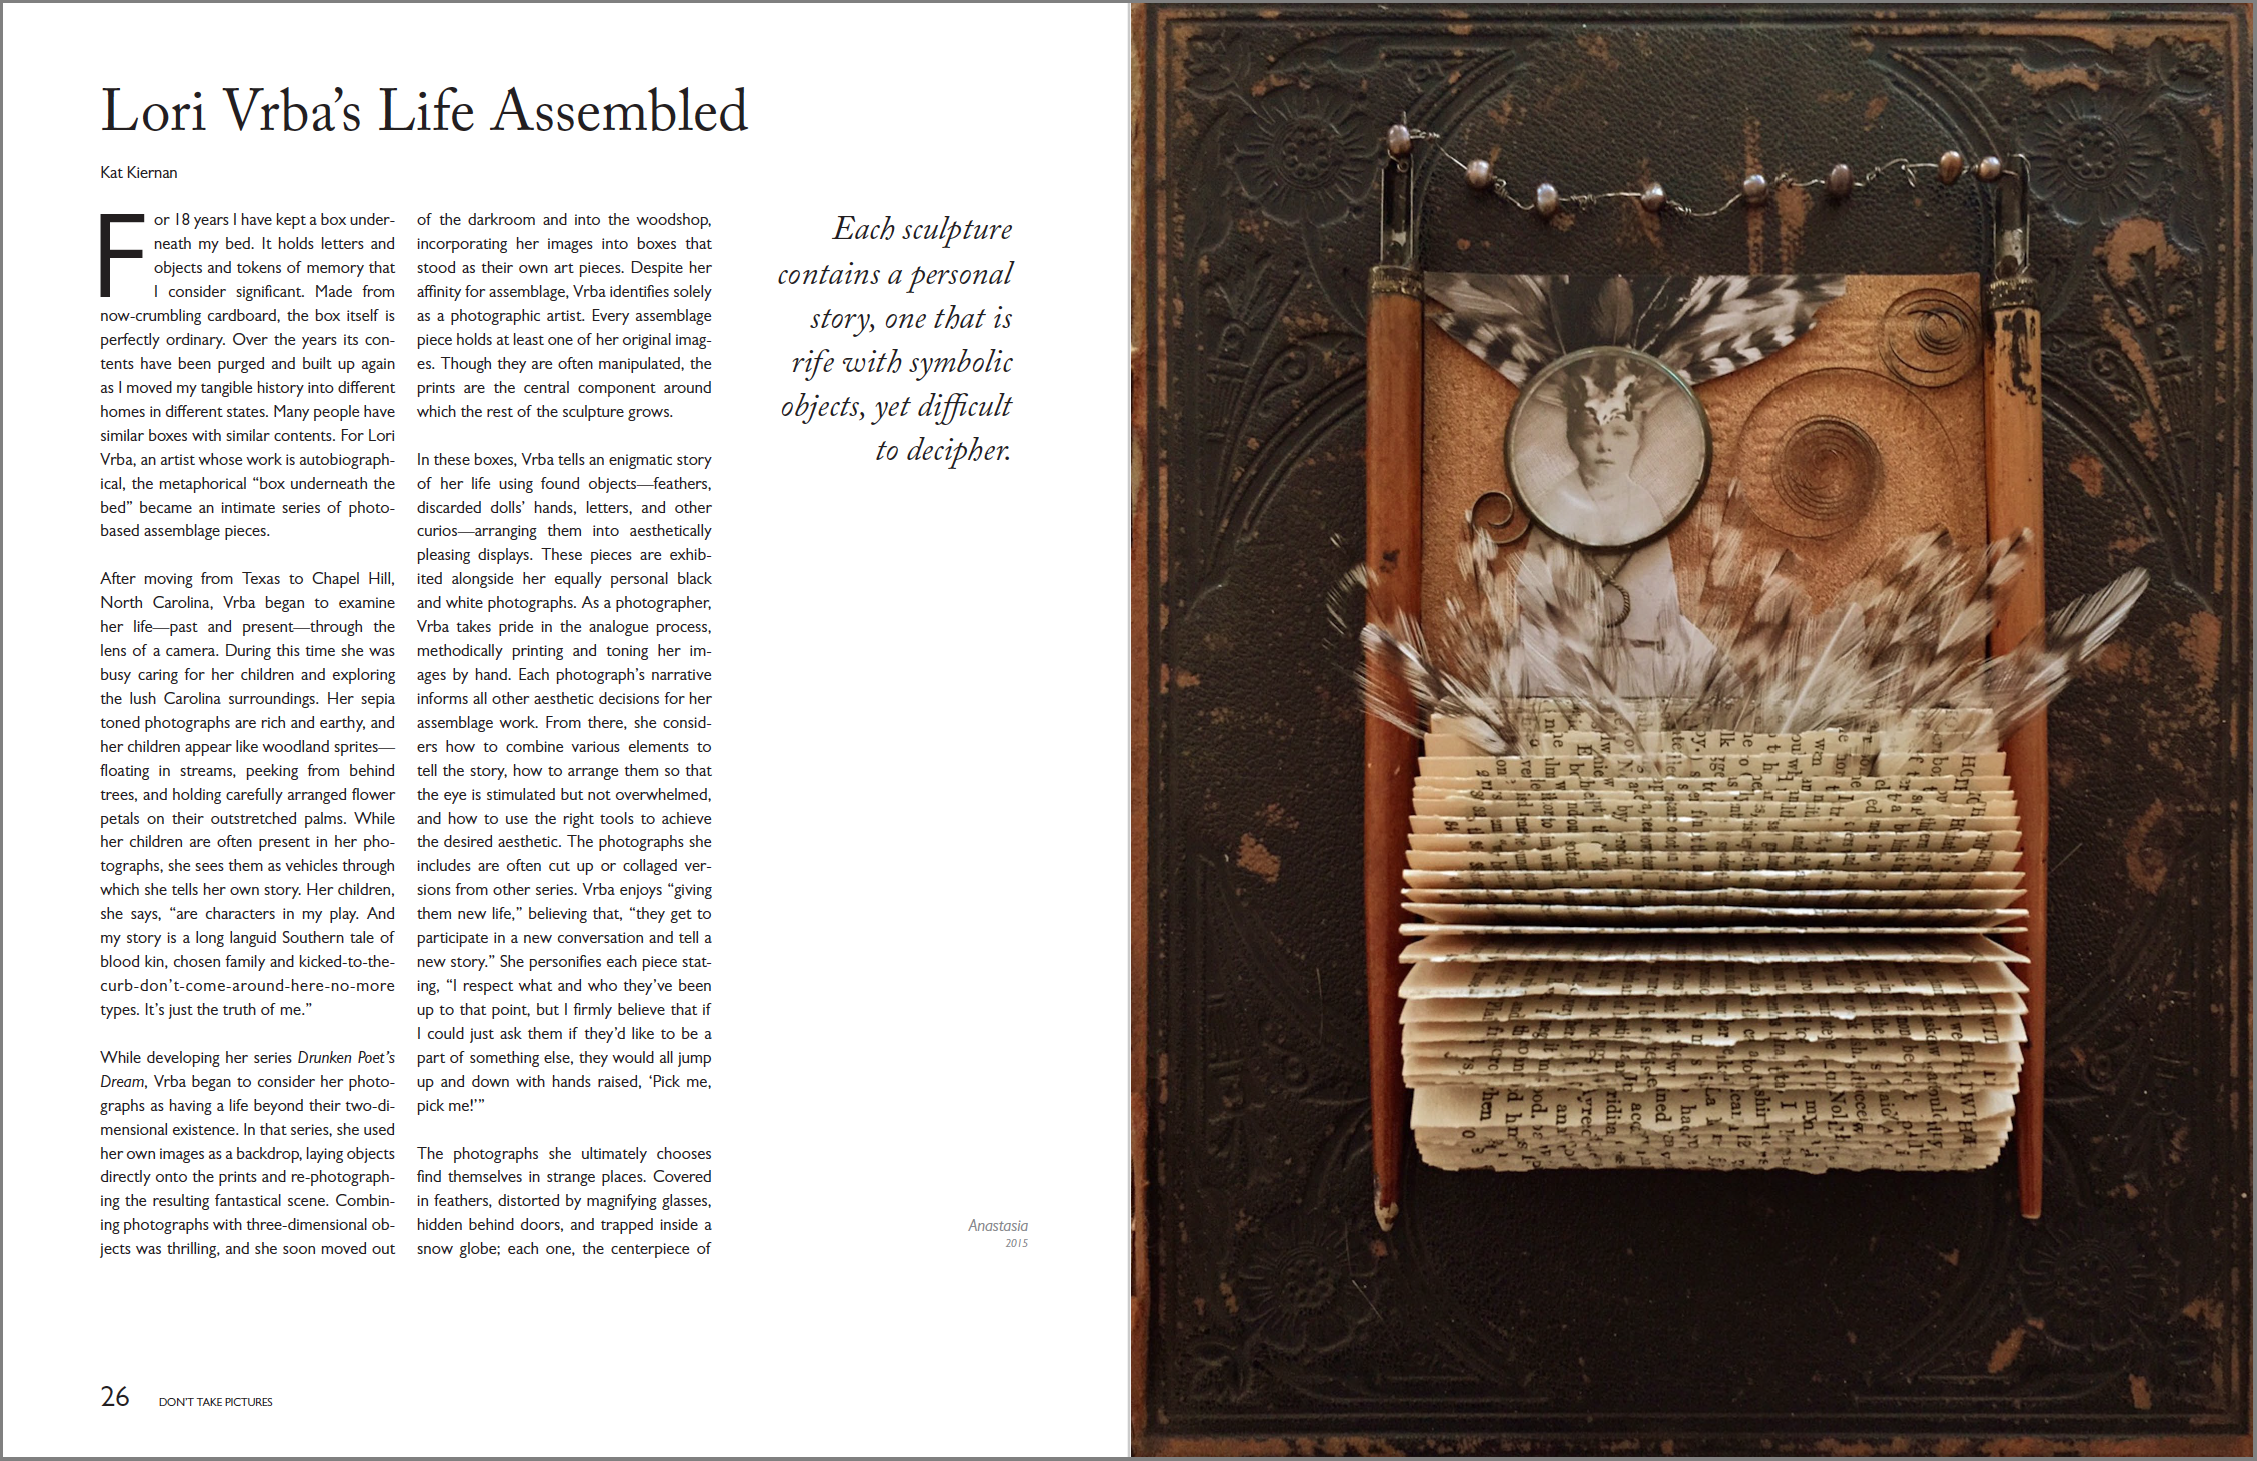 Lori Vrba's Life Assembled  Don't Take Pictures, Issue 5 (September 2015)